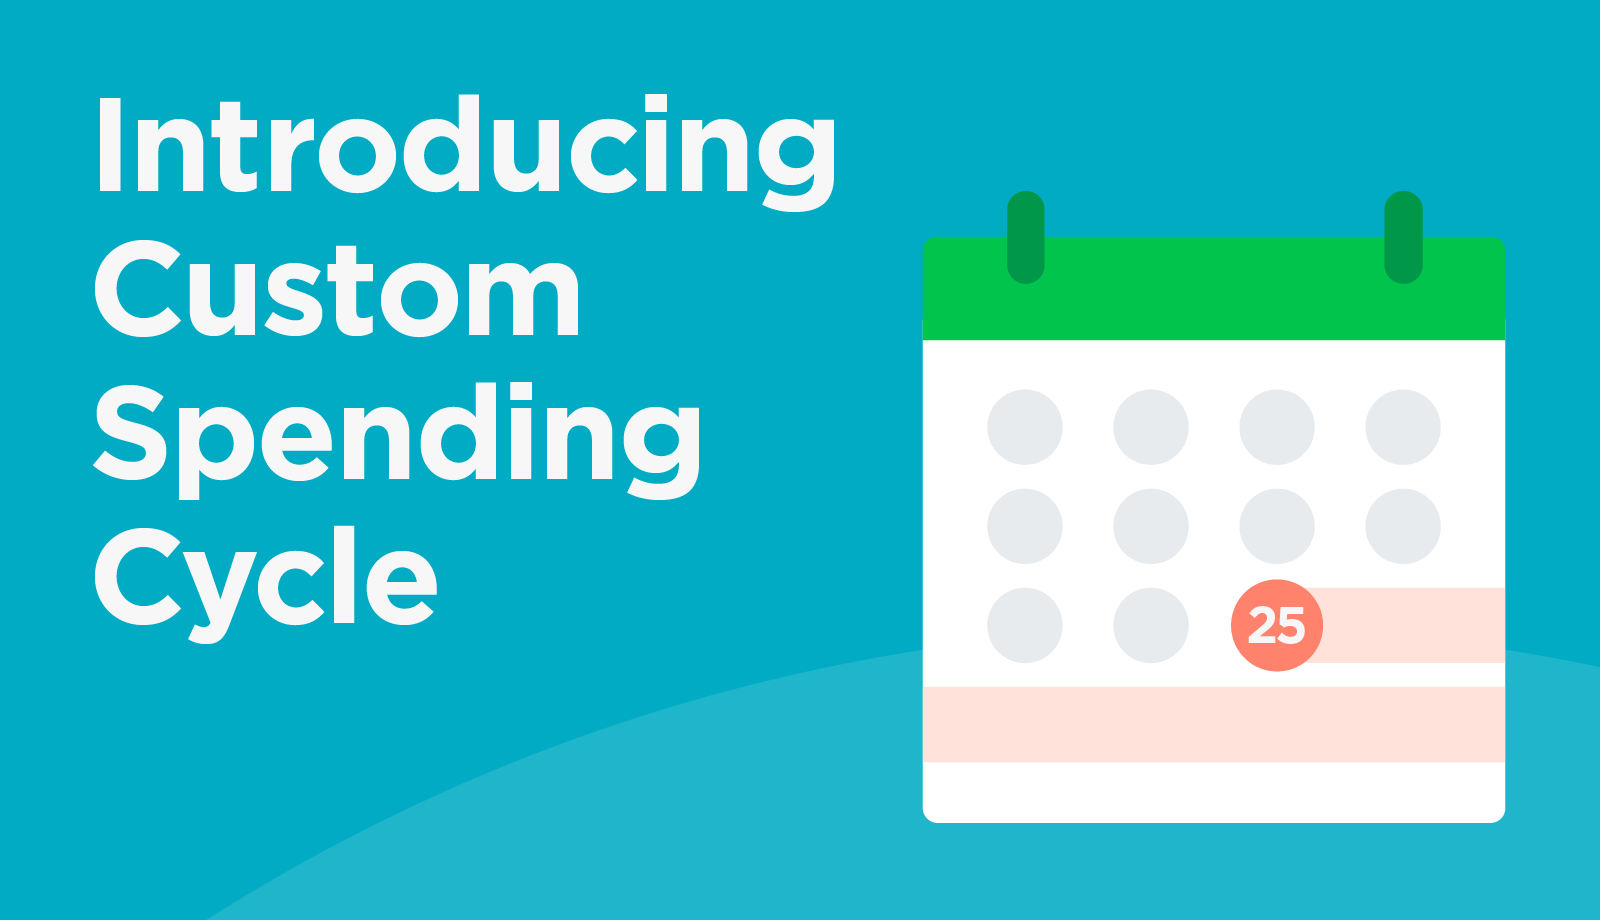 Custom Spending Cycle feature is now available!